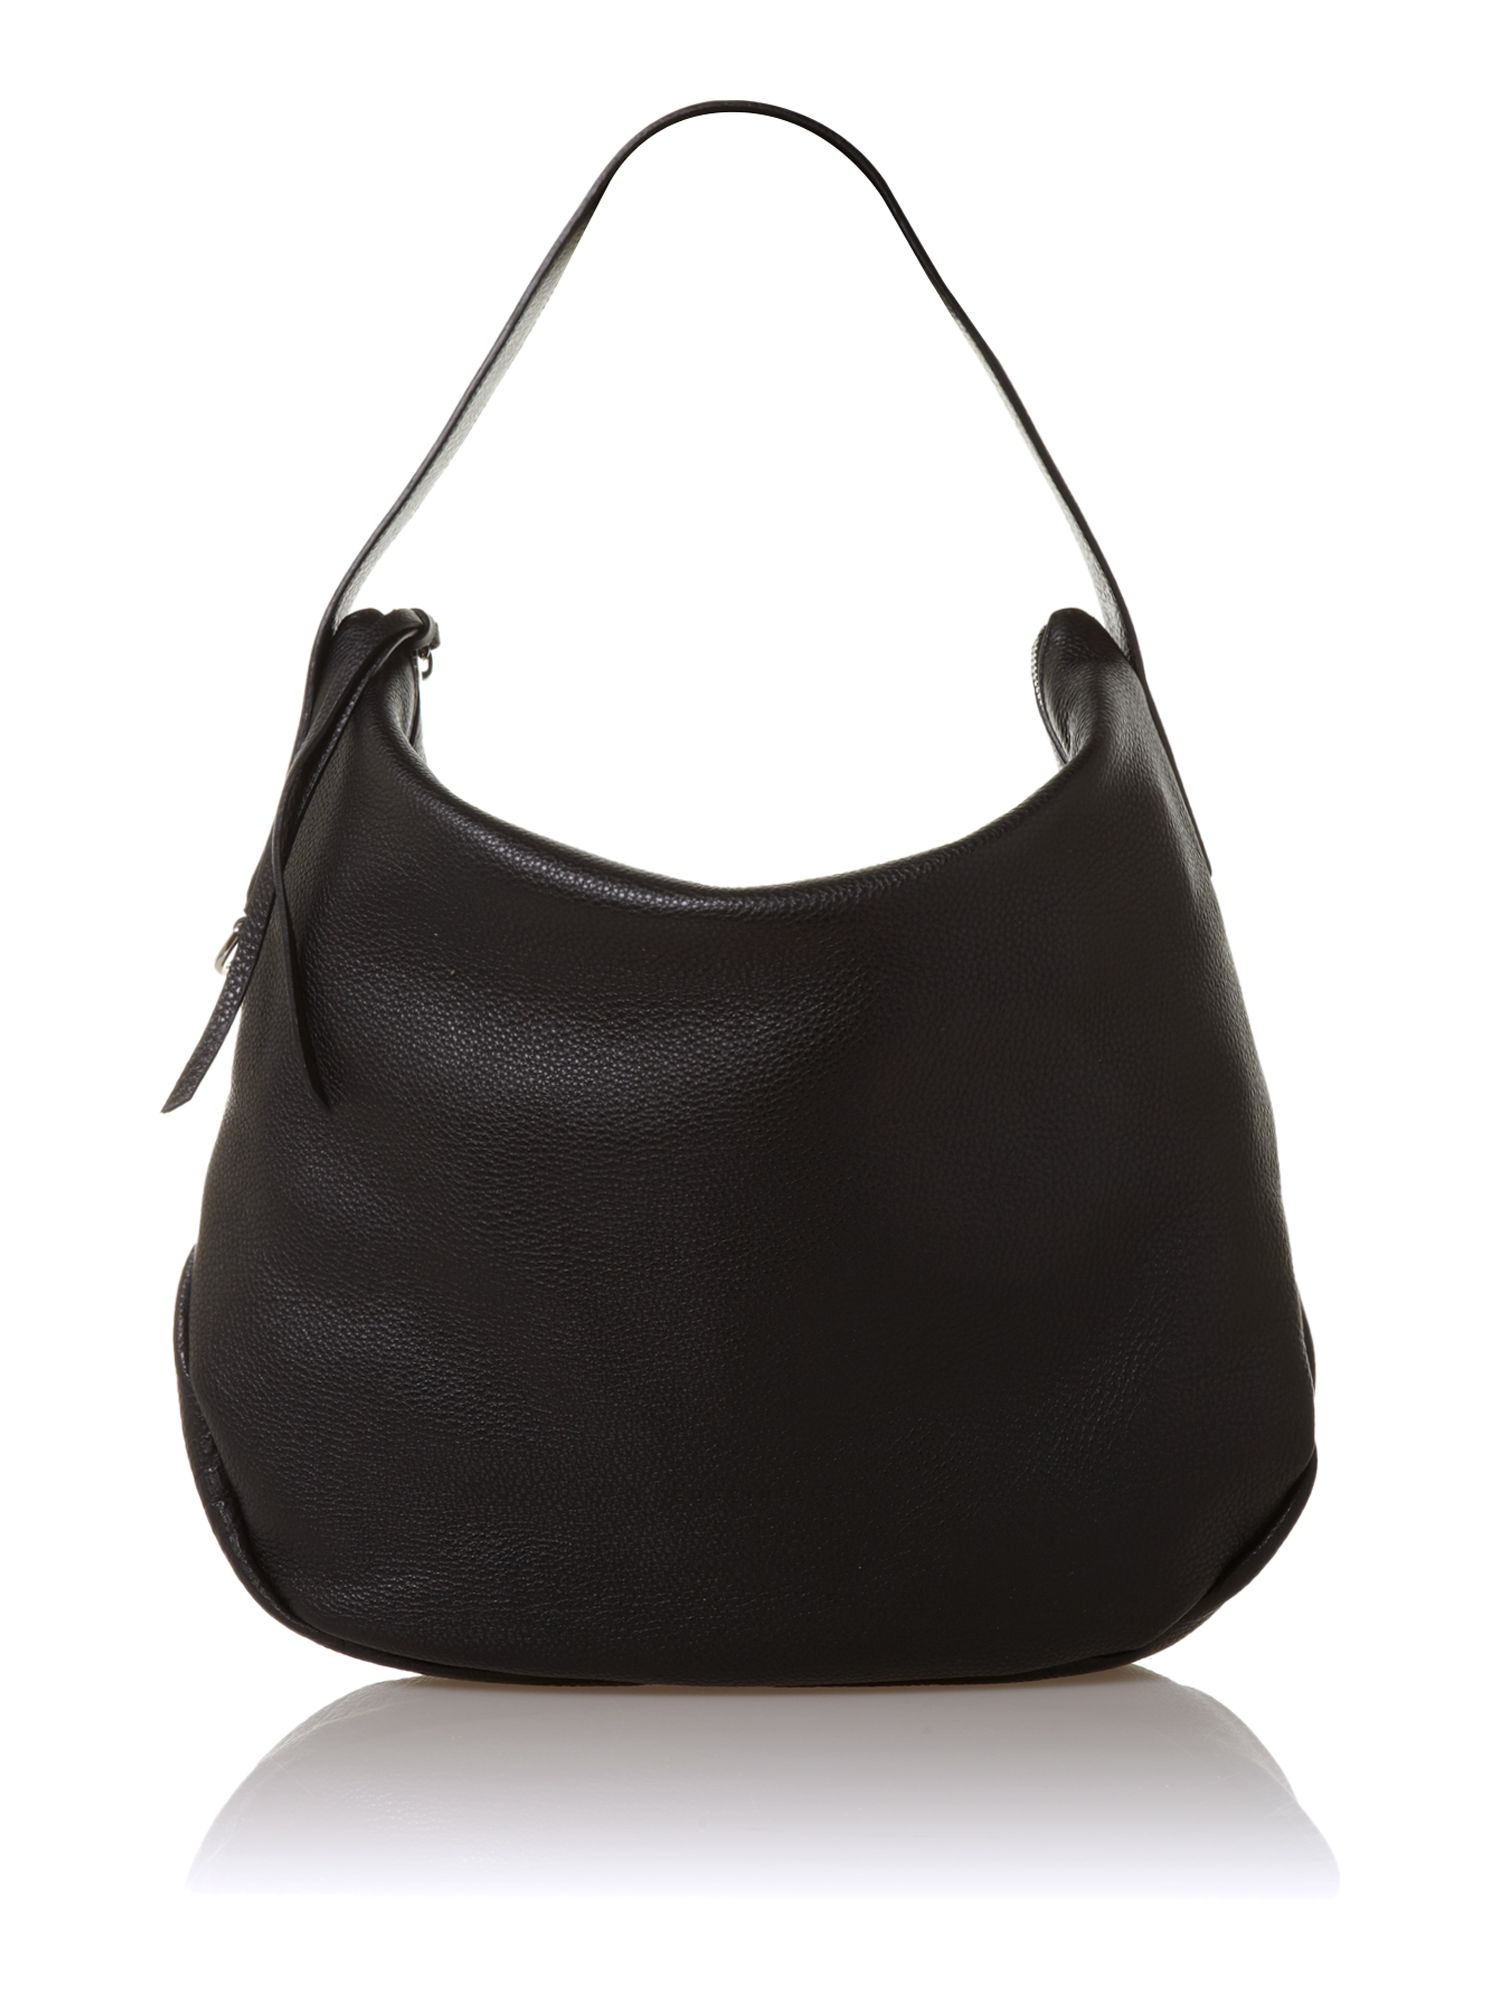 Mila hobo bag